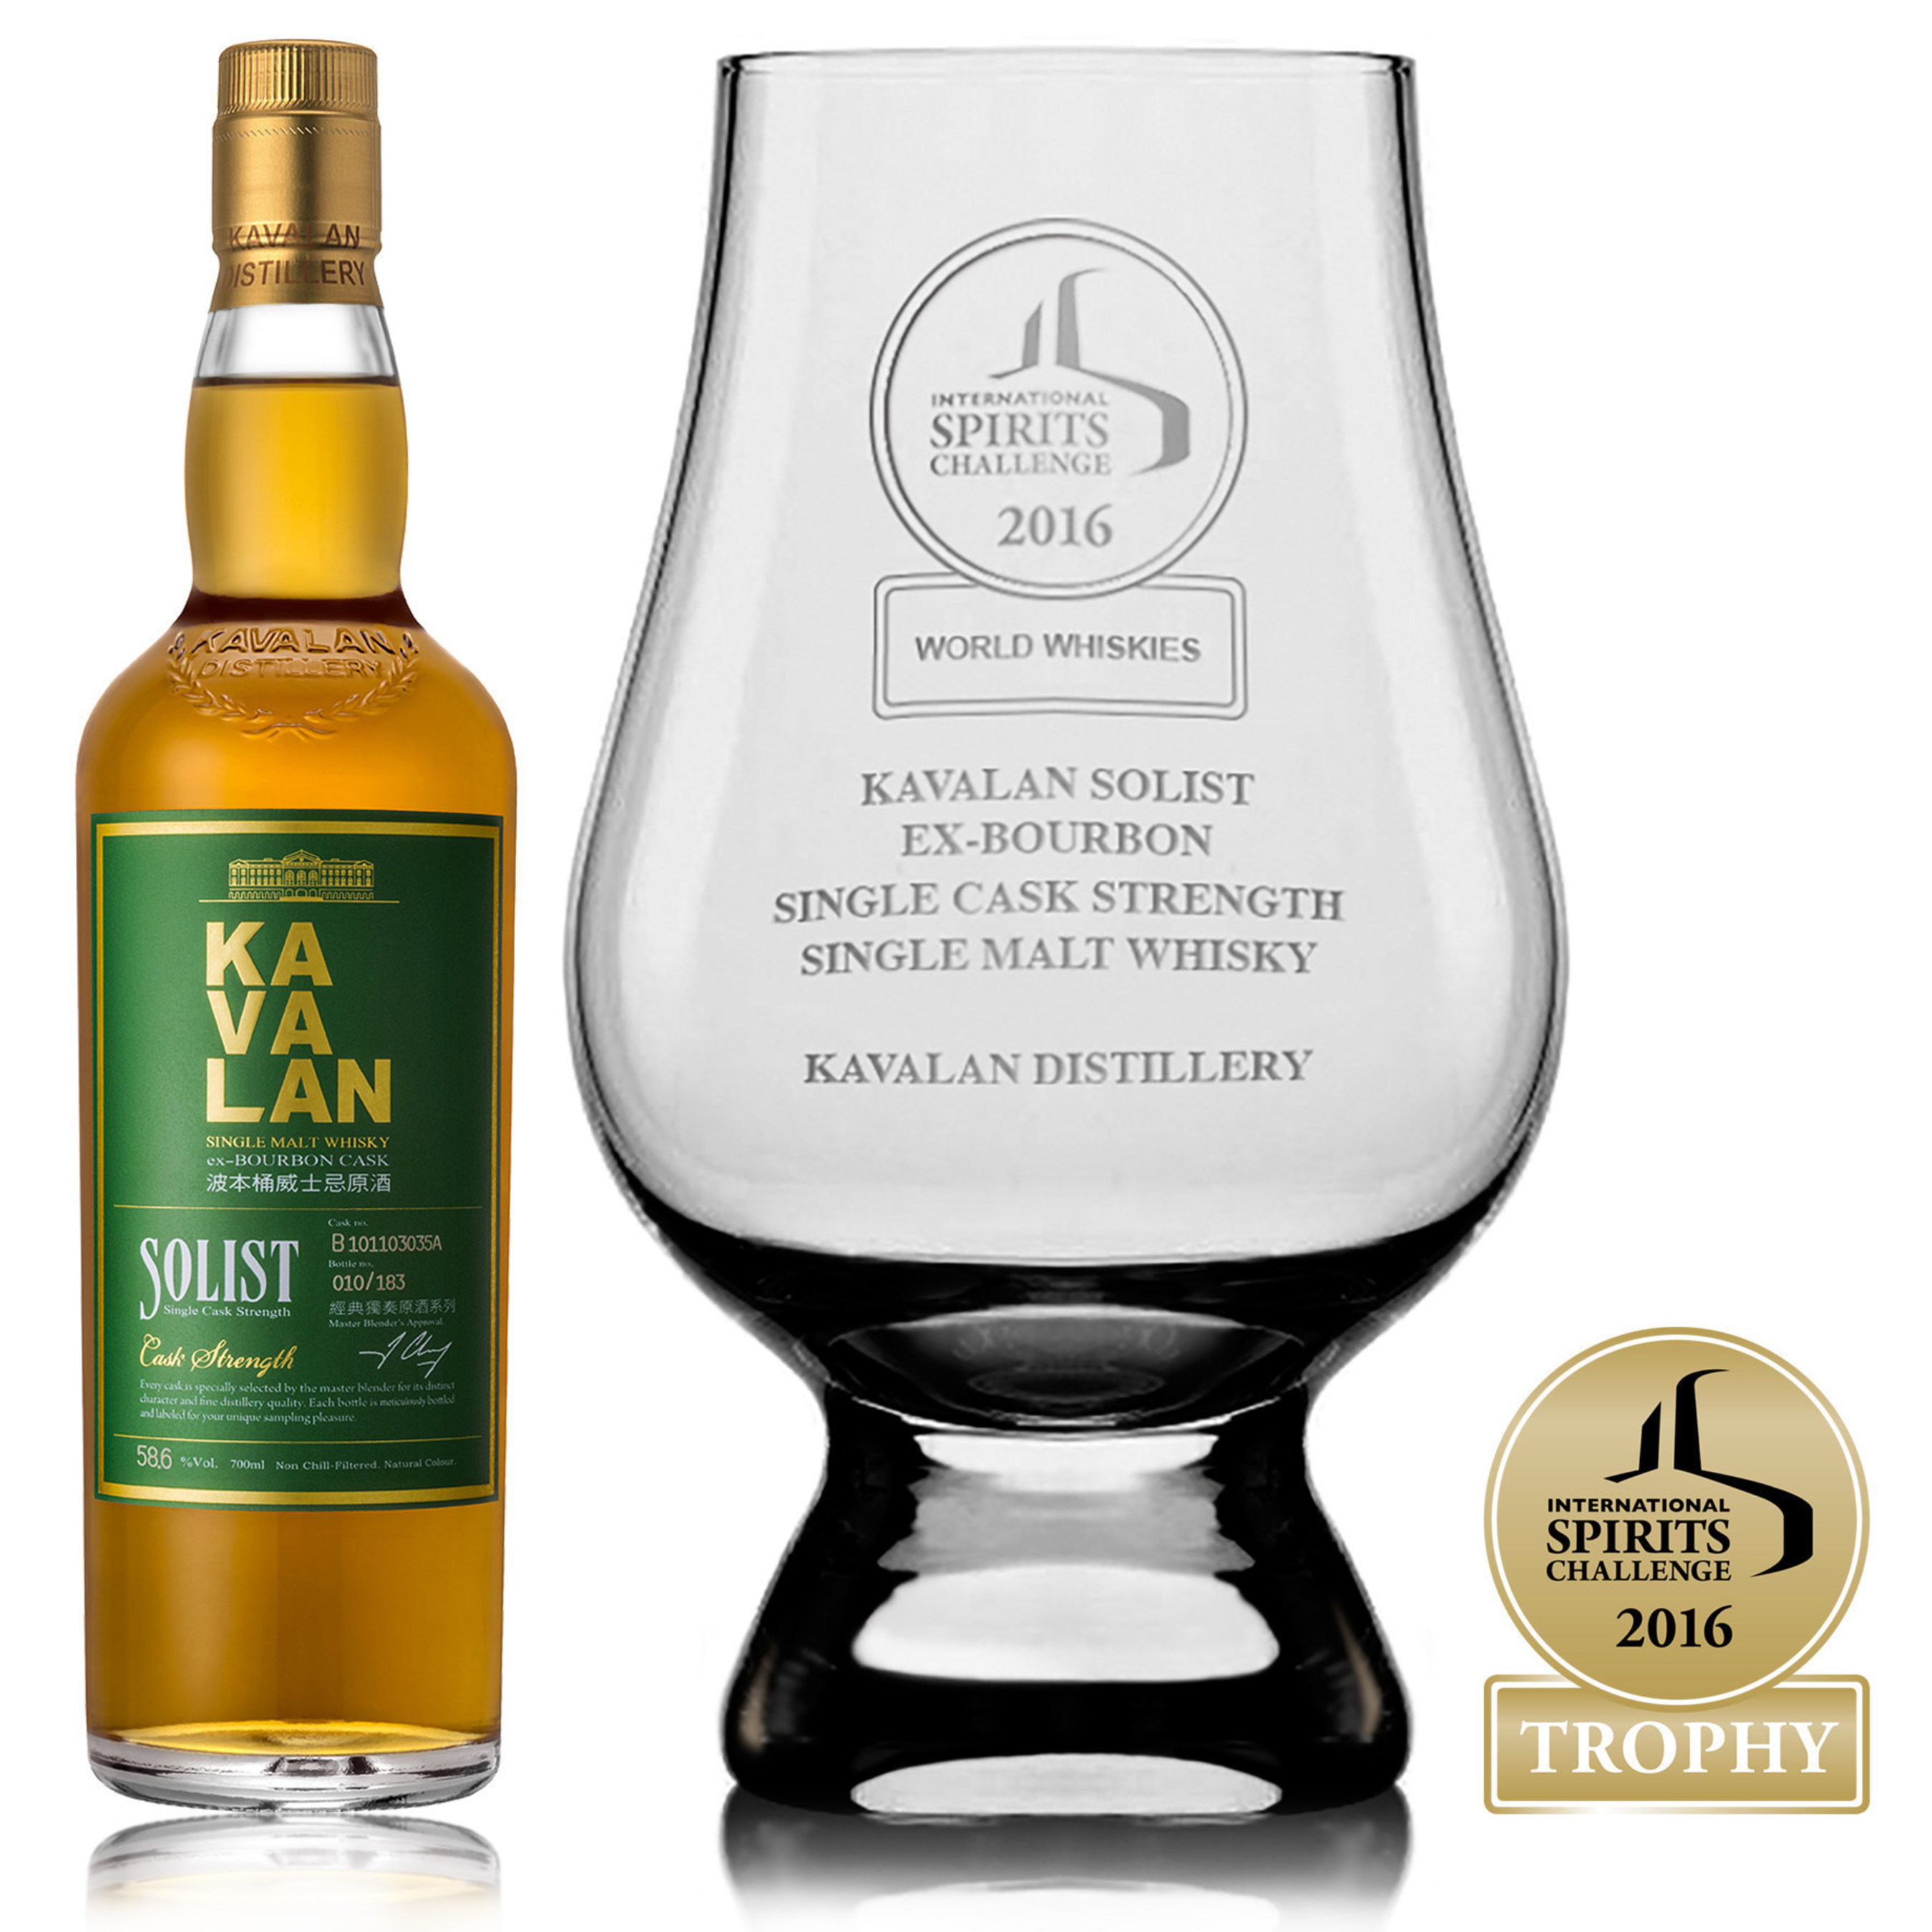 Kavalan Solist Ex-Bourbon Single Cask Strength wins 2016 ISC Trophy